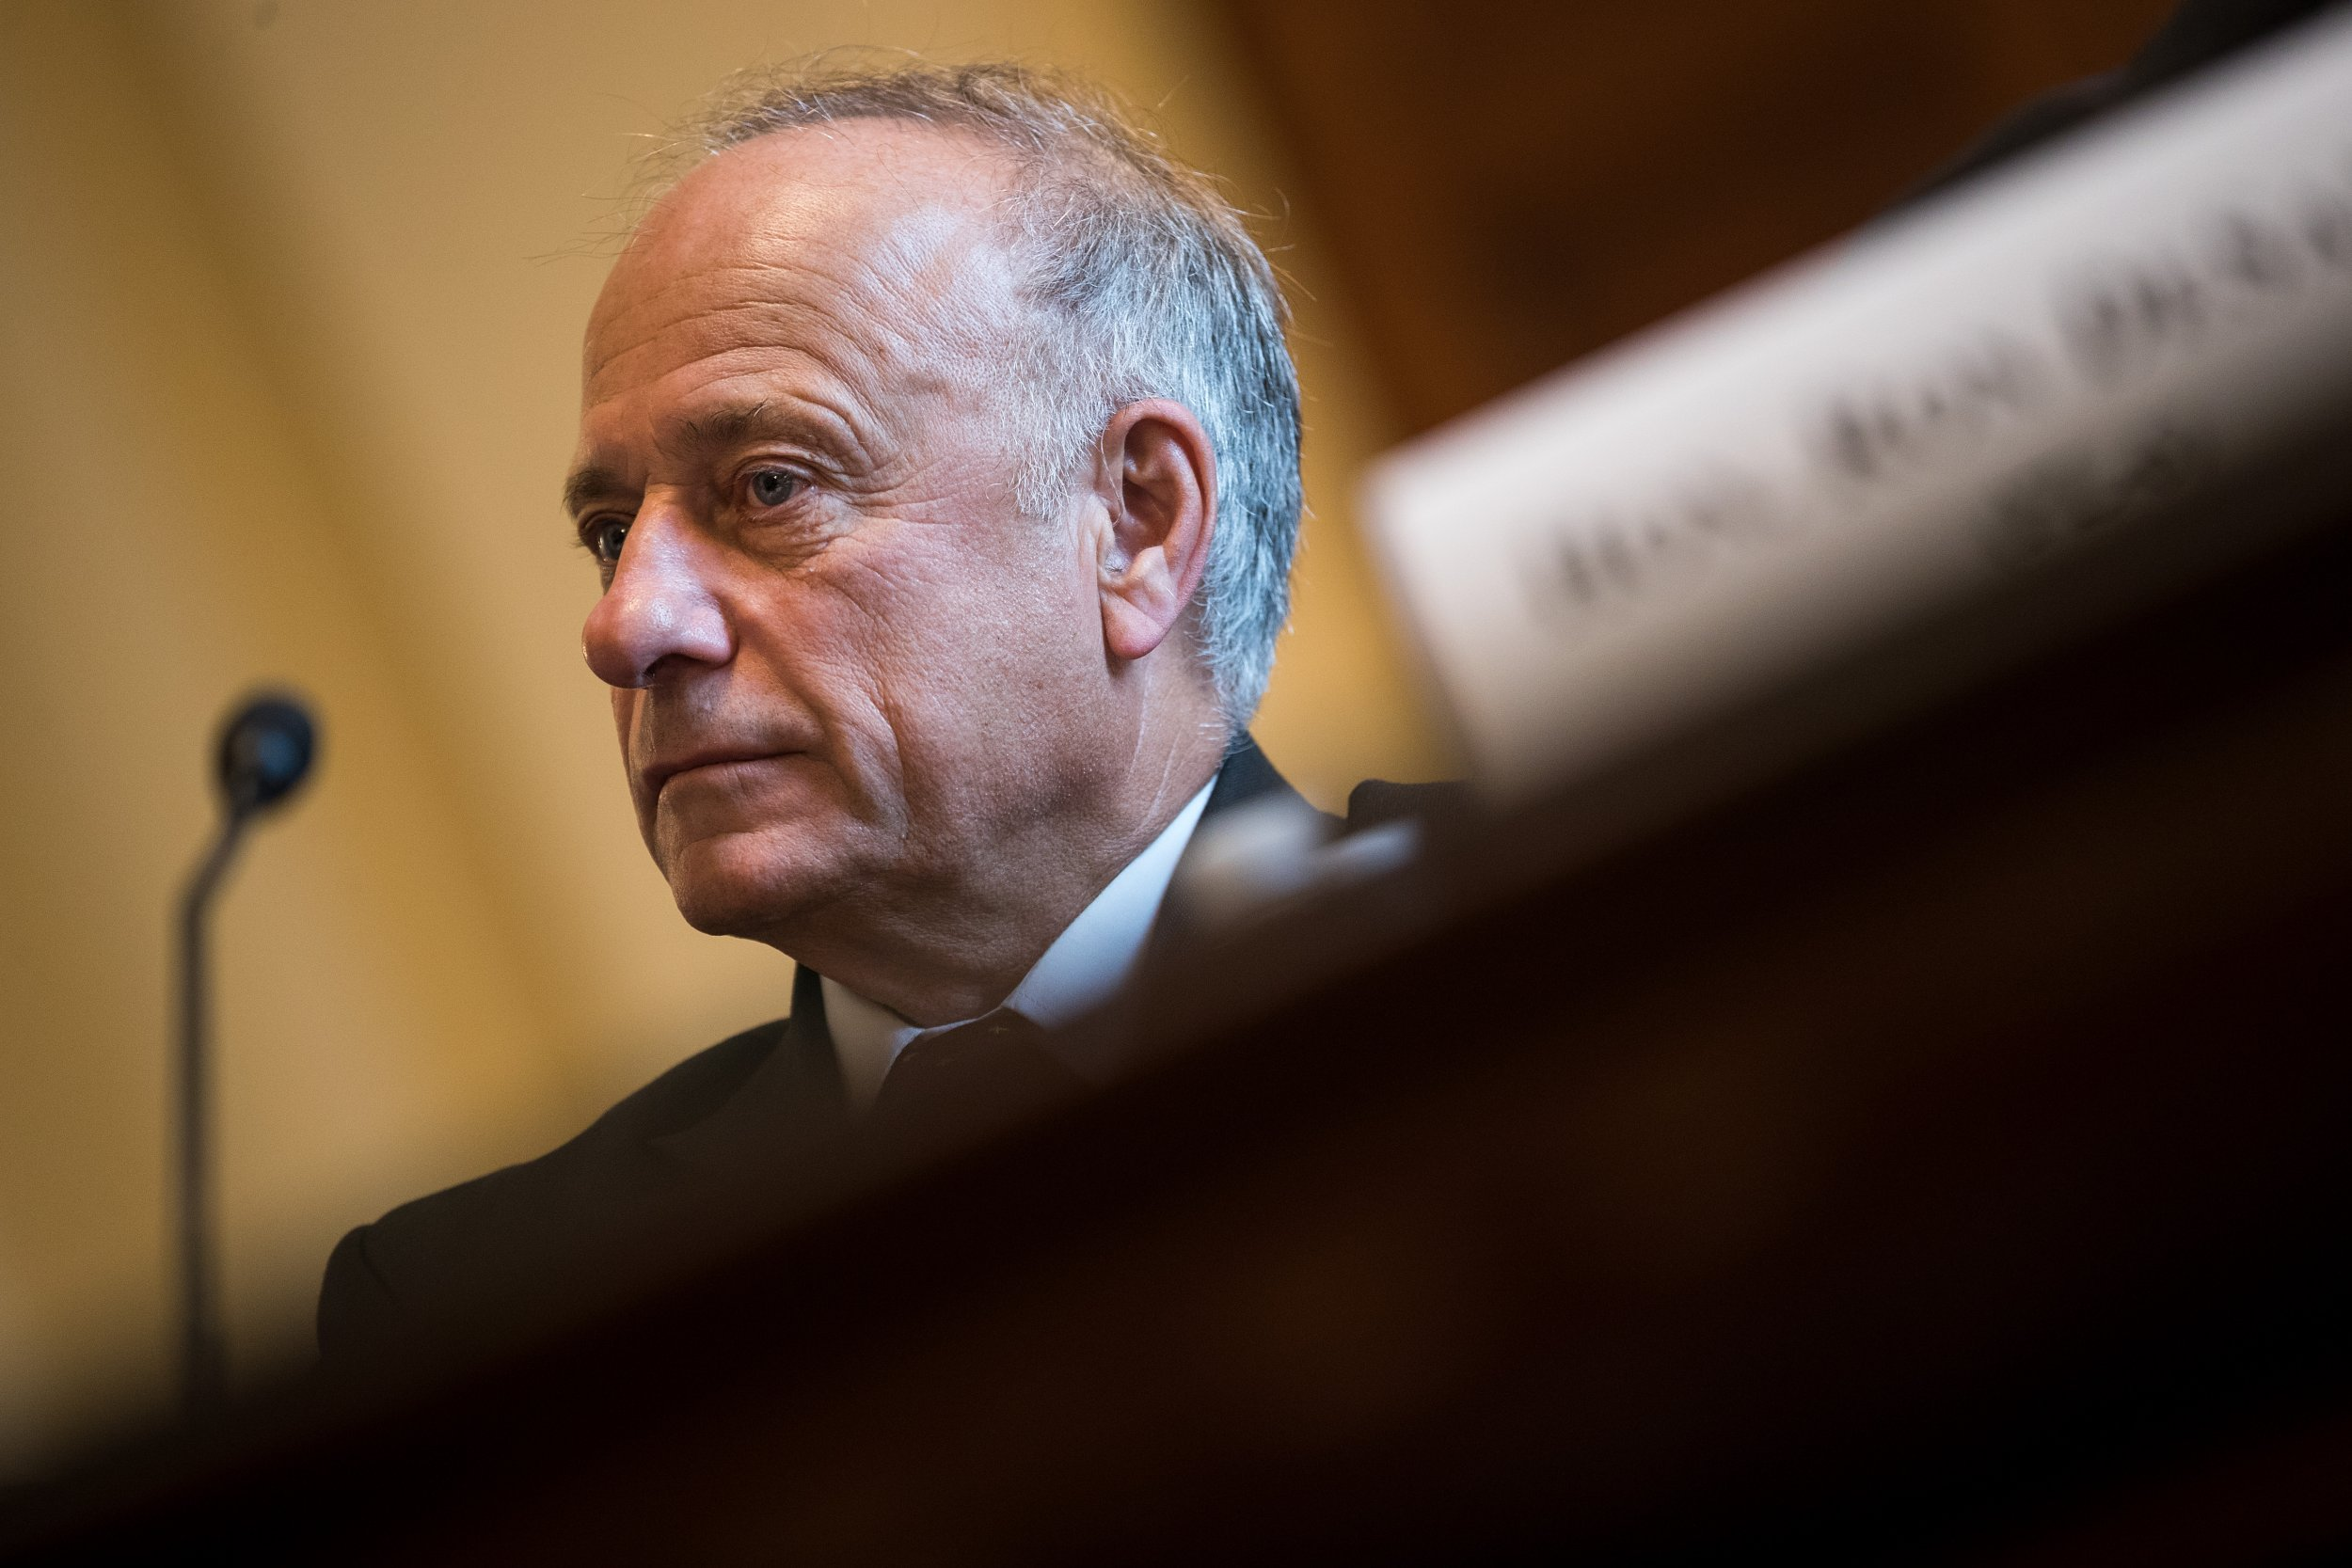 newsweek.com - Ramsey Touchberry - Steve King's modern-day civil war meme is 'treason,' says ex-White House ethics lawyer